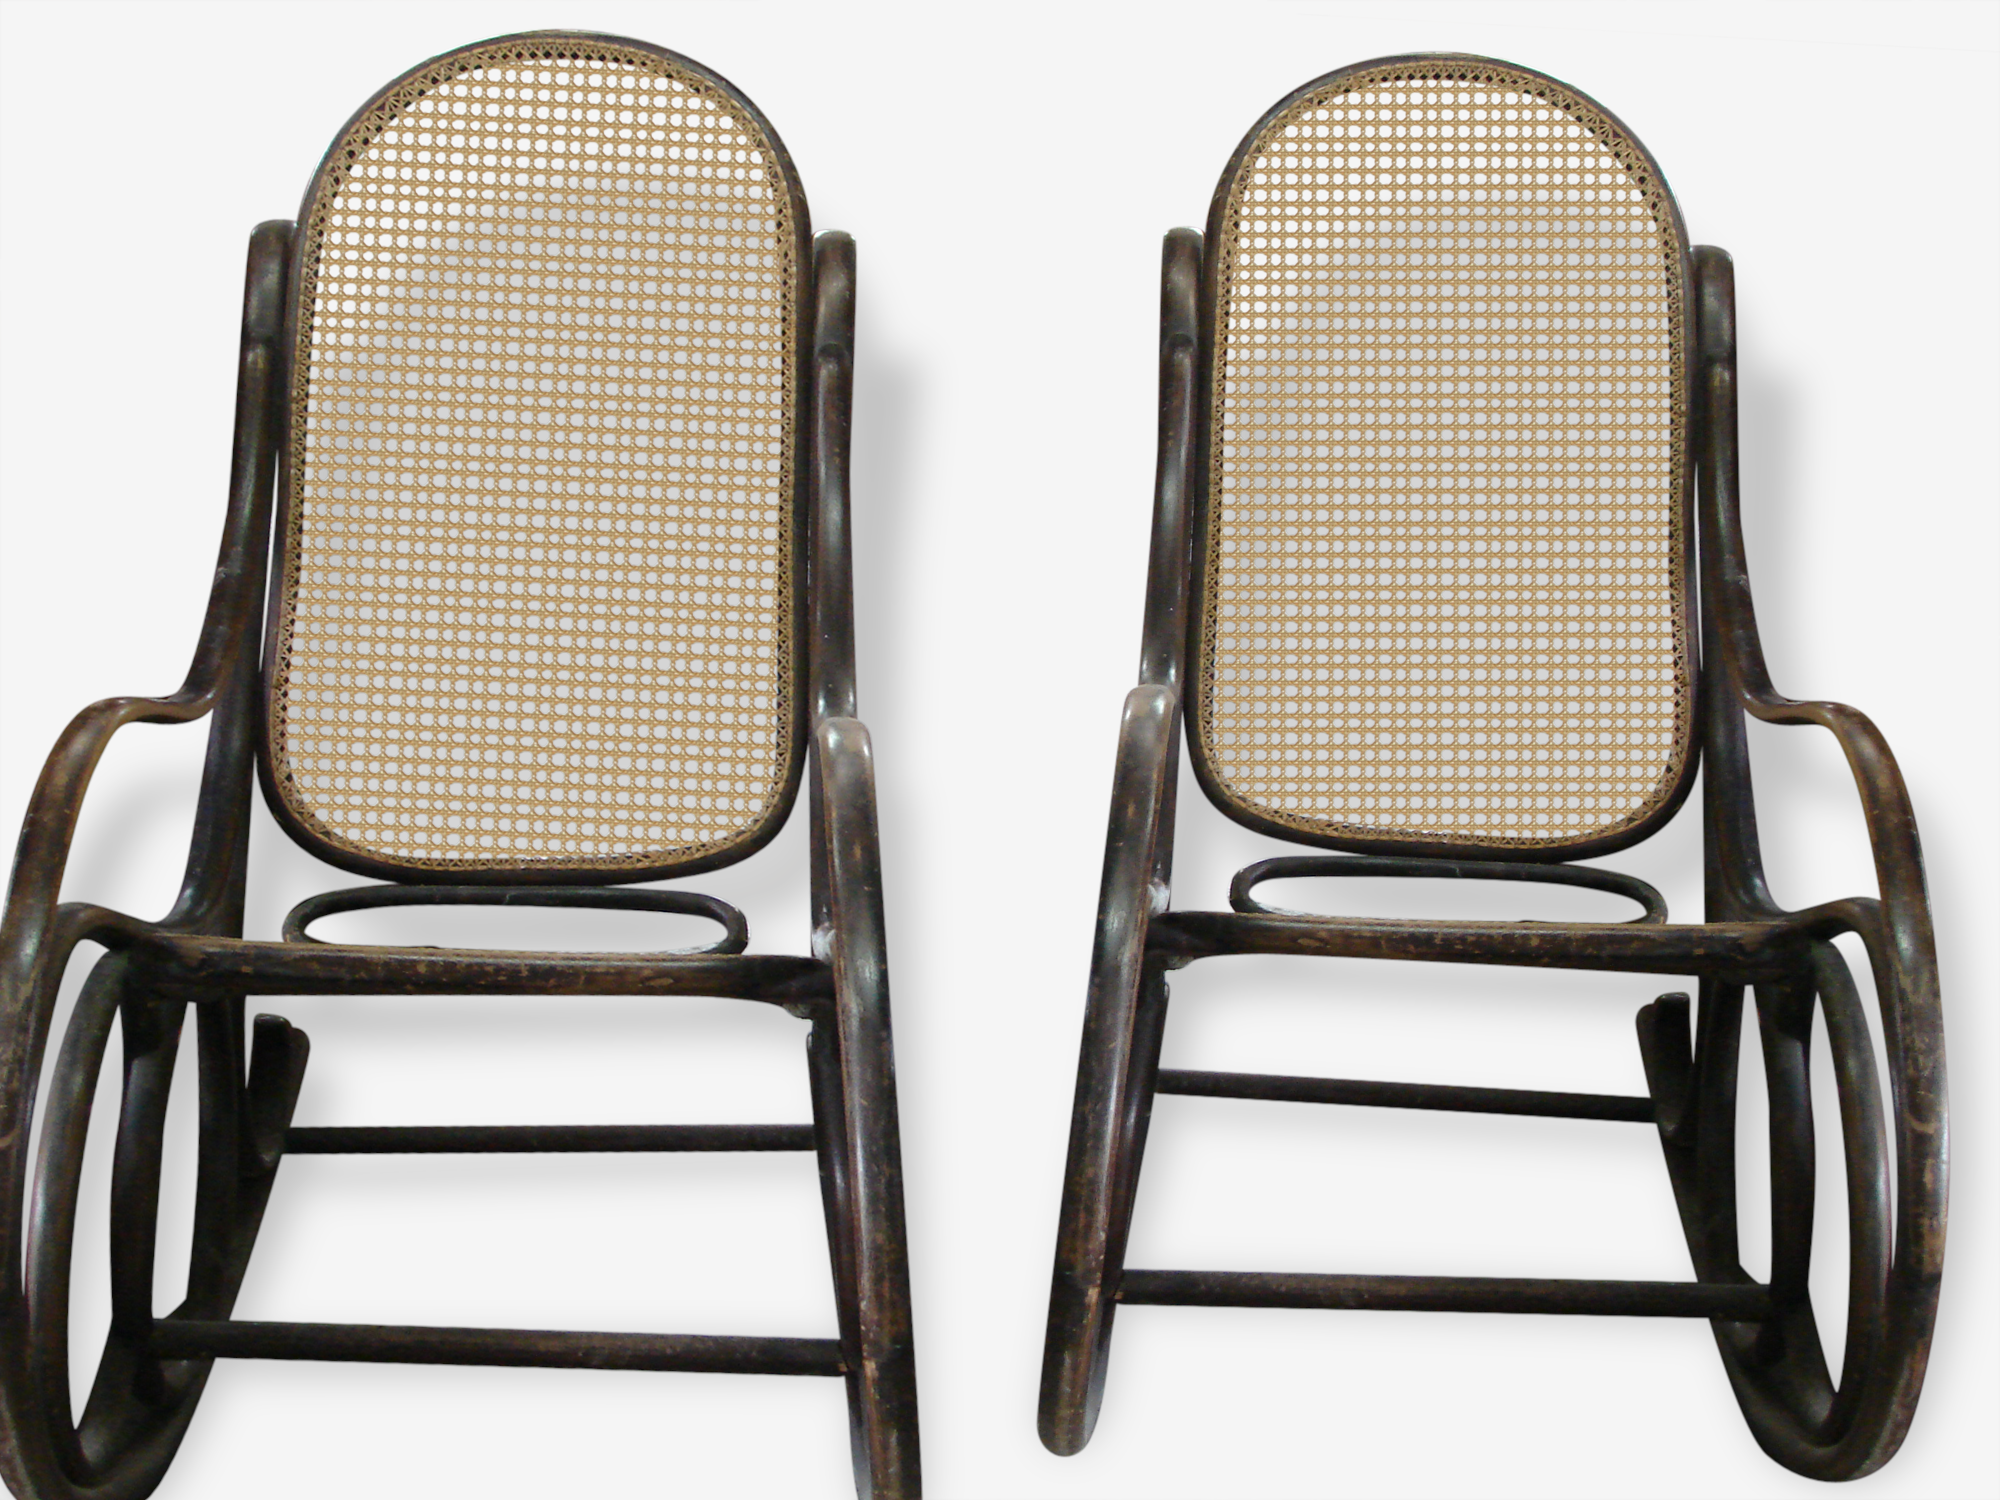 Thonet, rocking-chair vintage